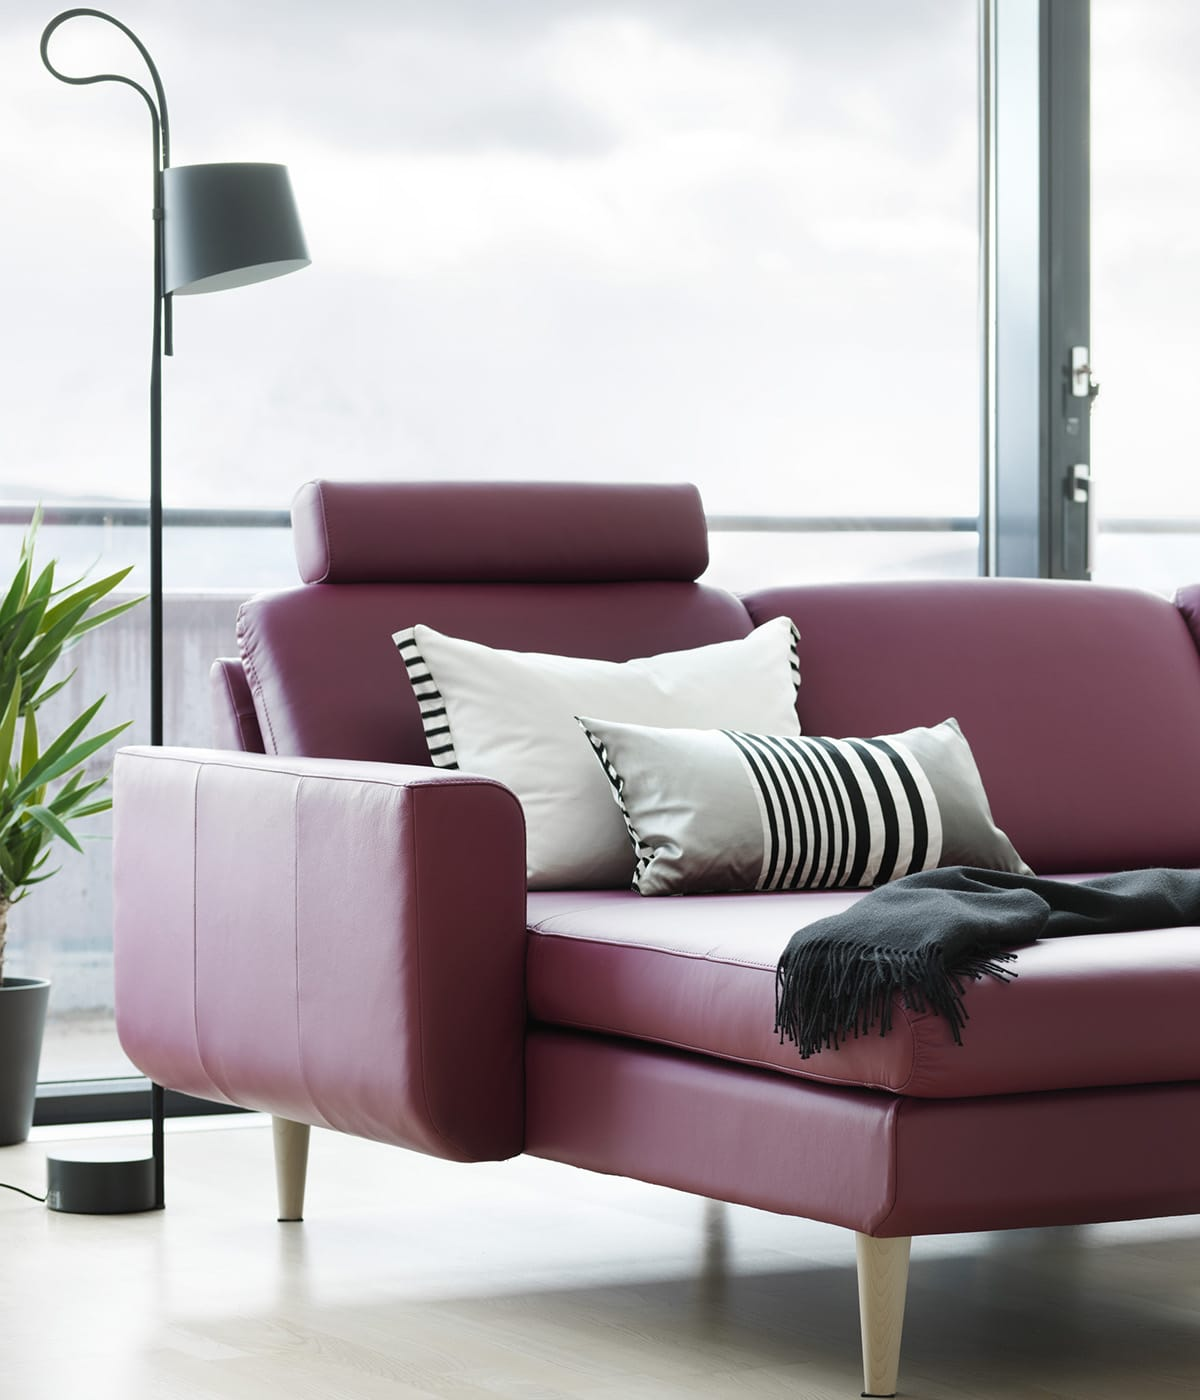 Stressless-Sofa-Joy-moderne-Mobel-klares-Design -